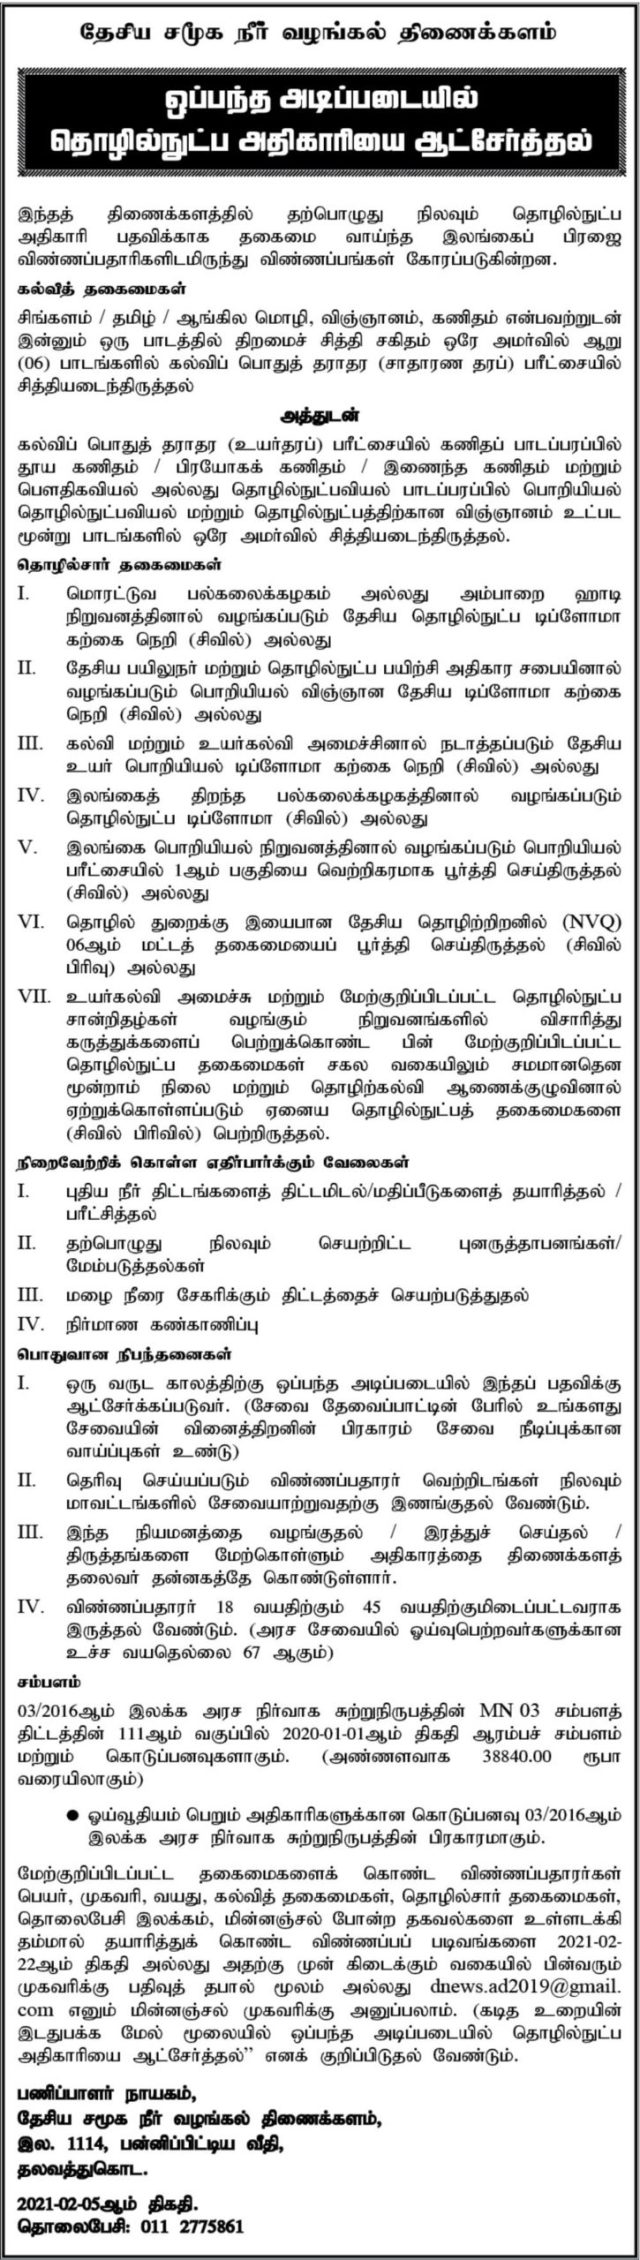 Technical Officers On Contract Basis - Department Of National Community Water Supply